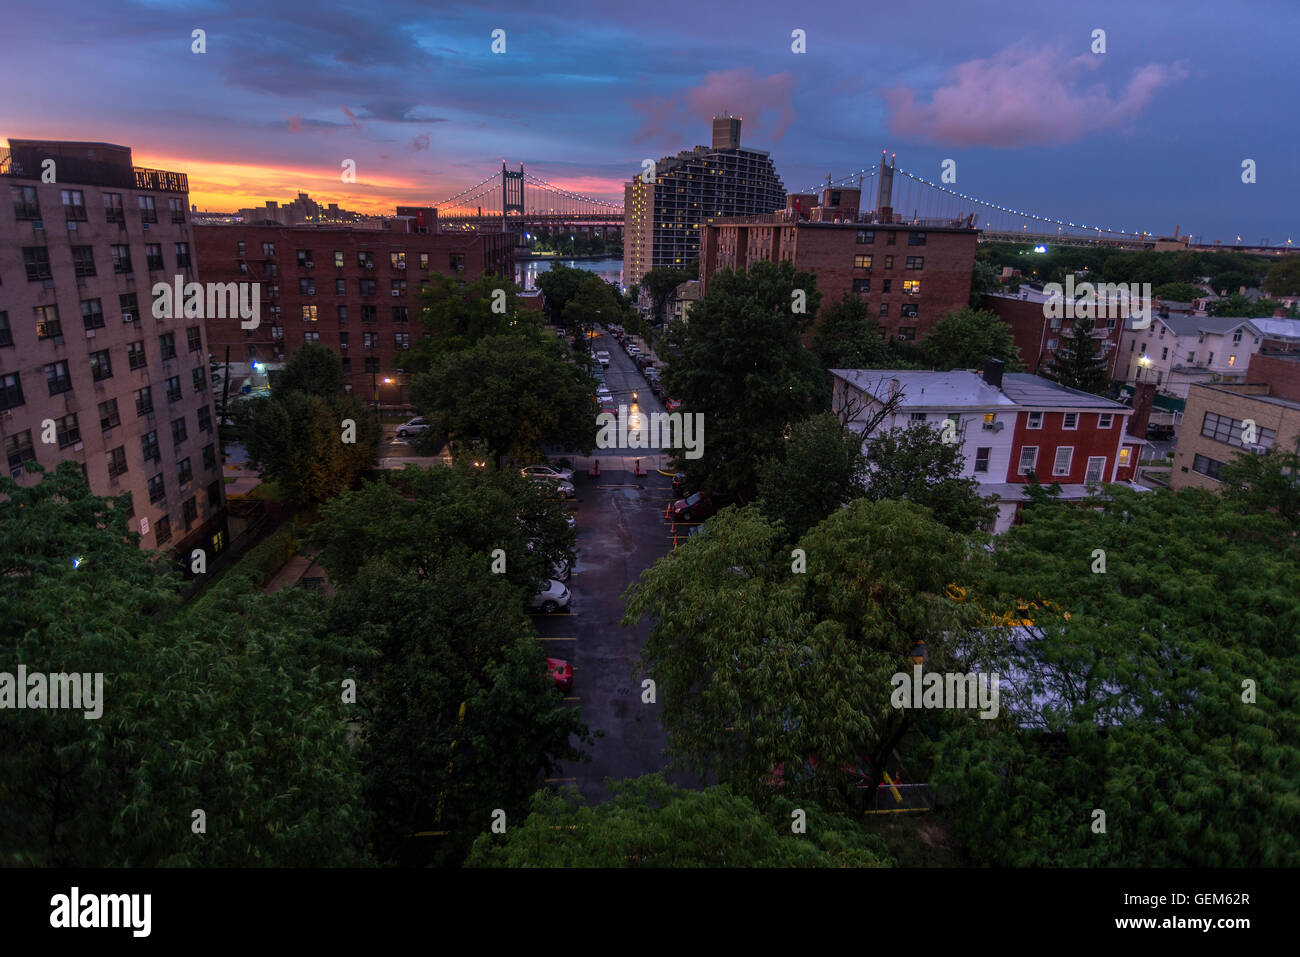 Queens, New York, USA - Sunset in Astoria Queens after a summer storm. - Stock Image